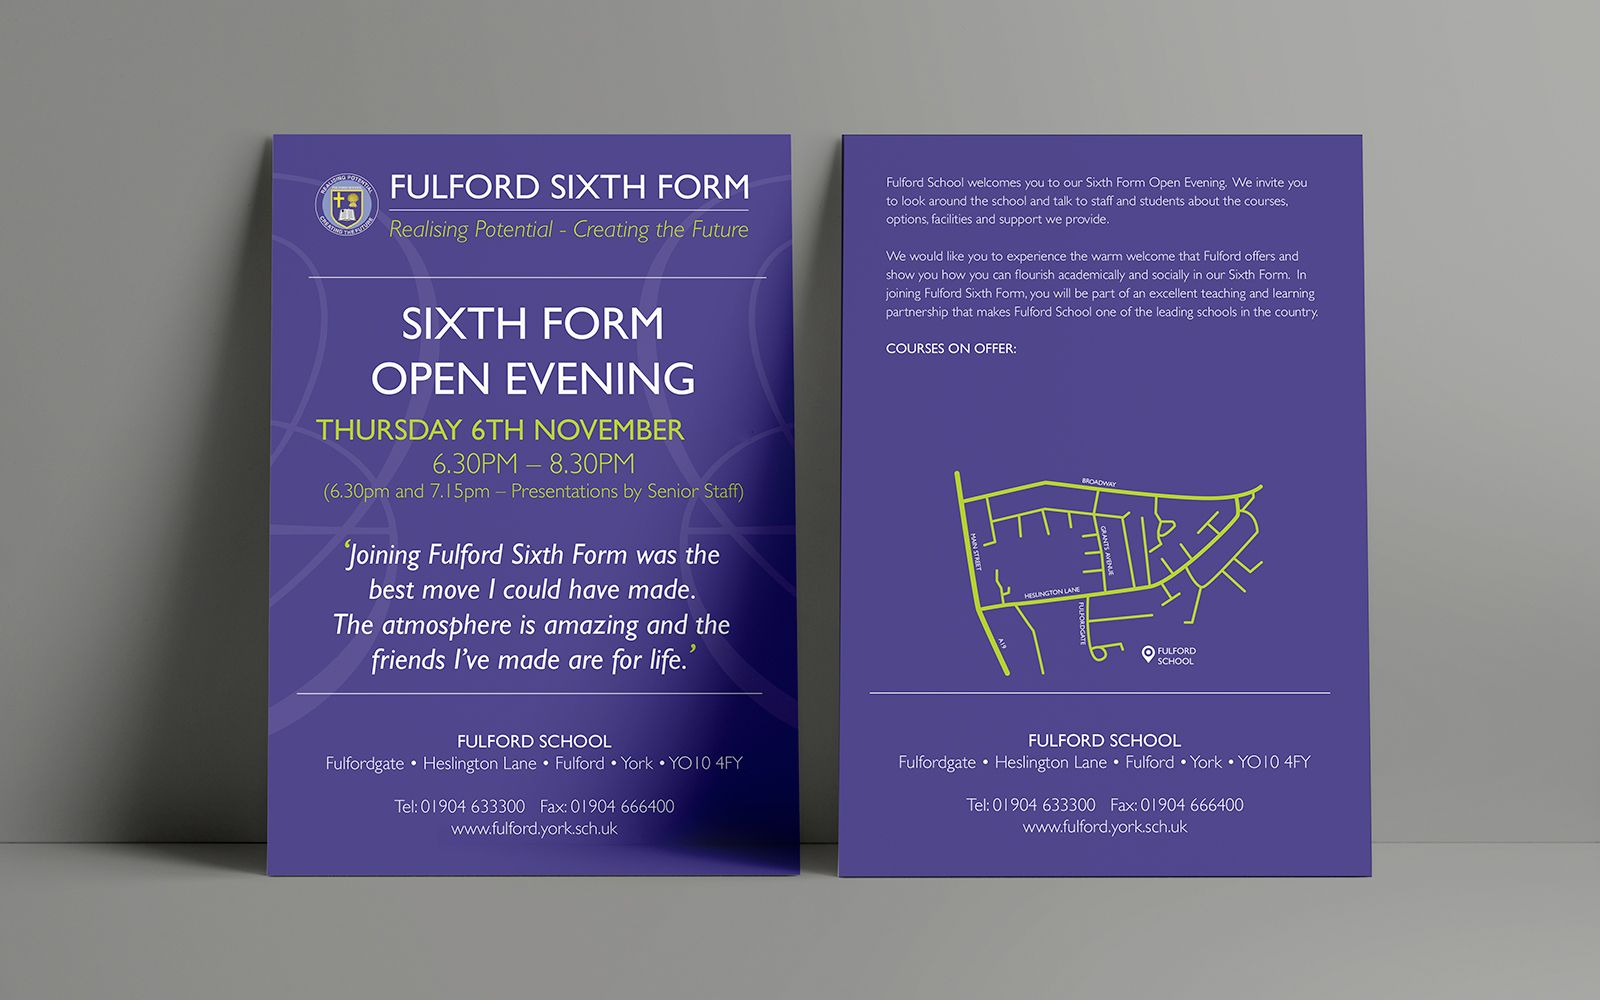 Fulford School Sixth Form Open Evening Leaflets And Flyers Design